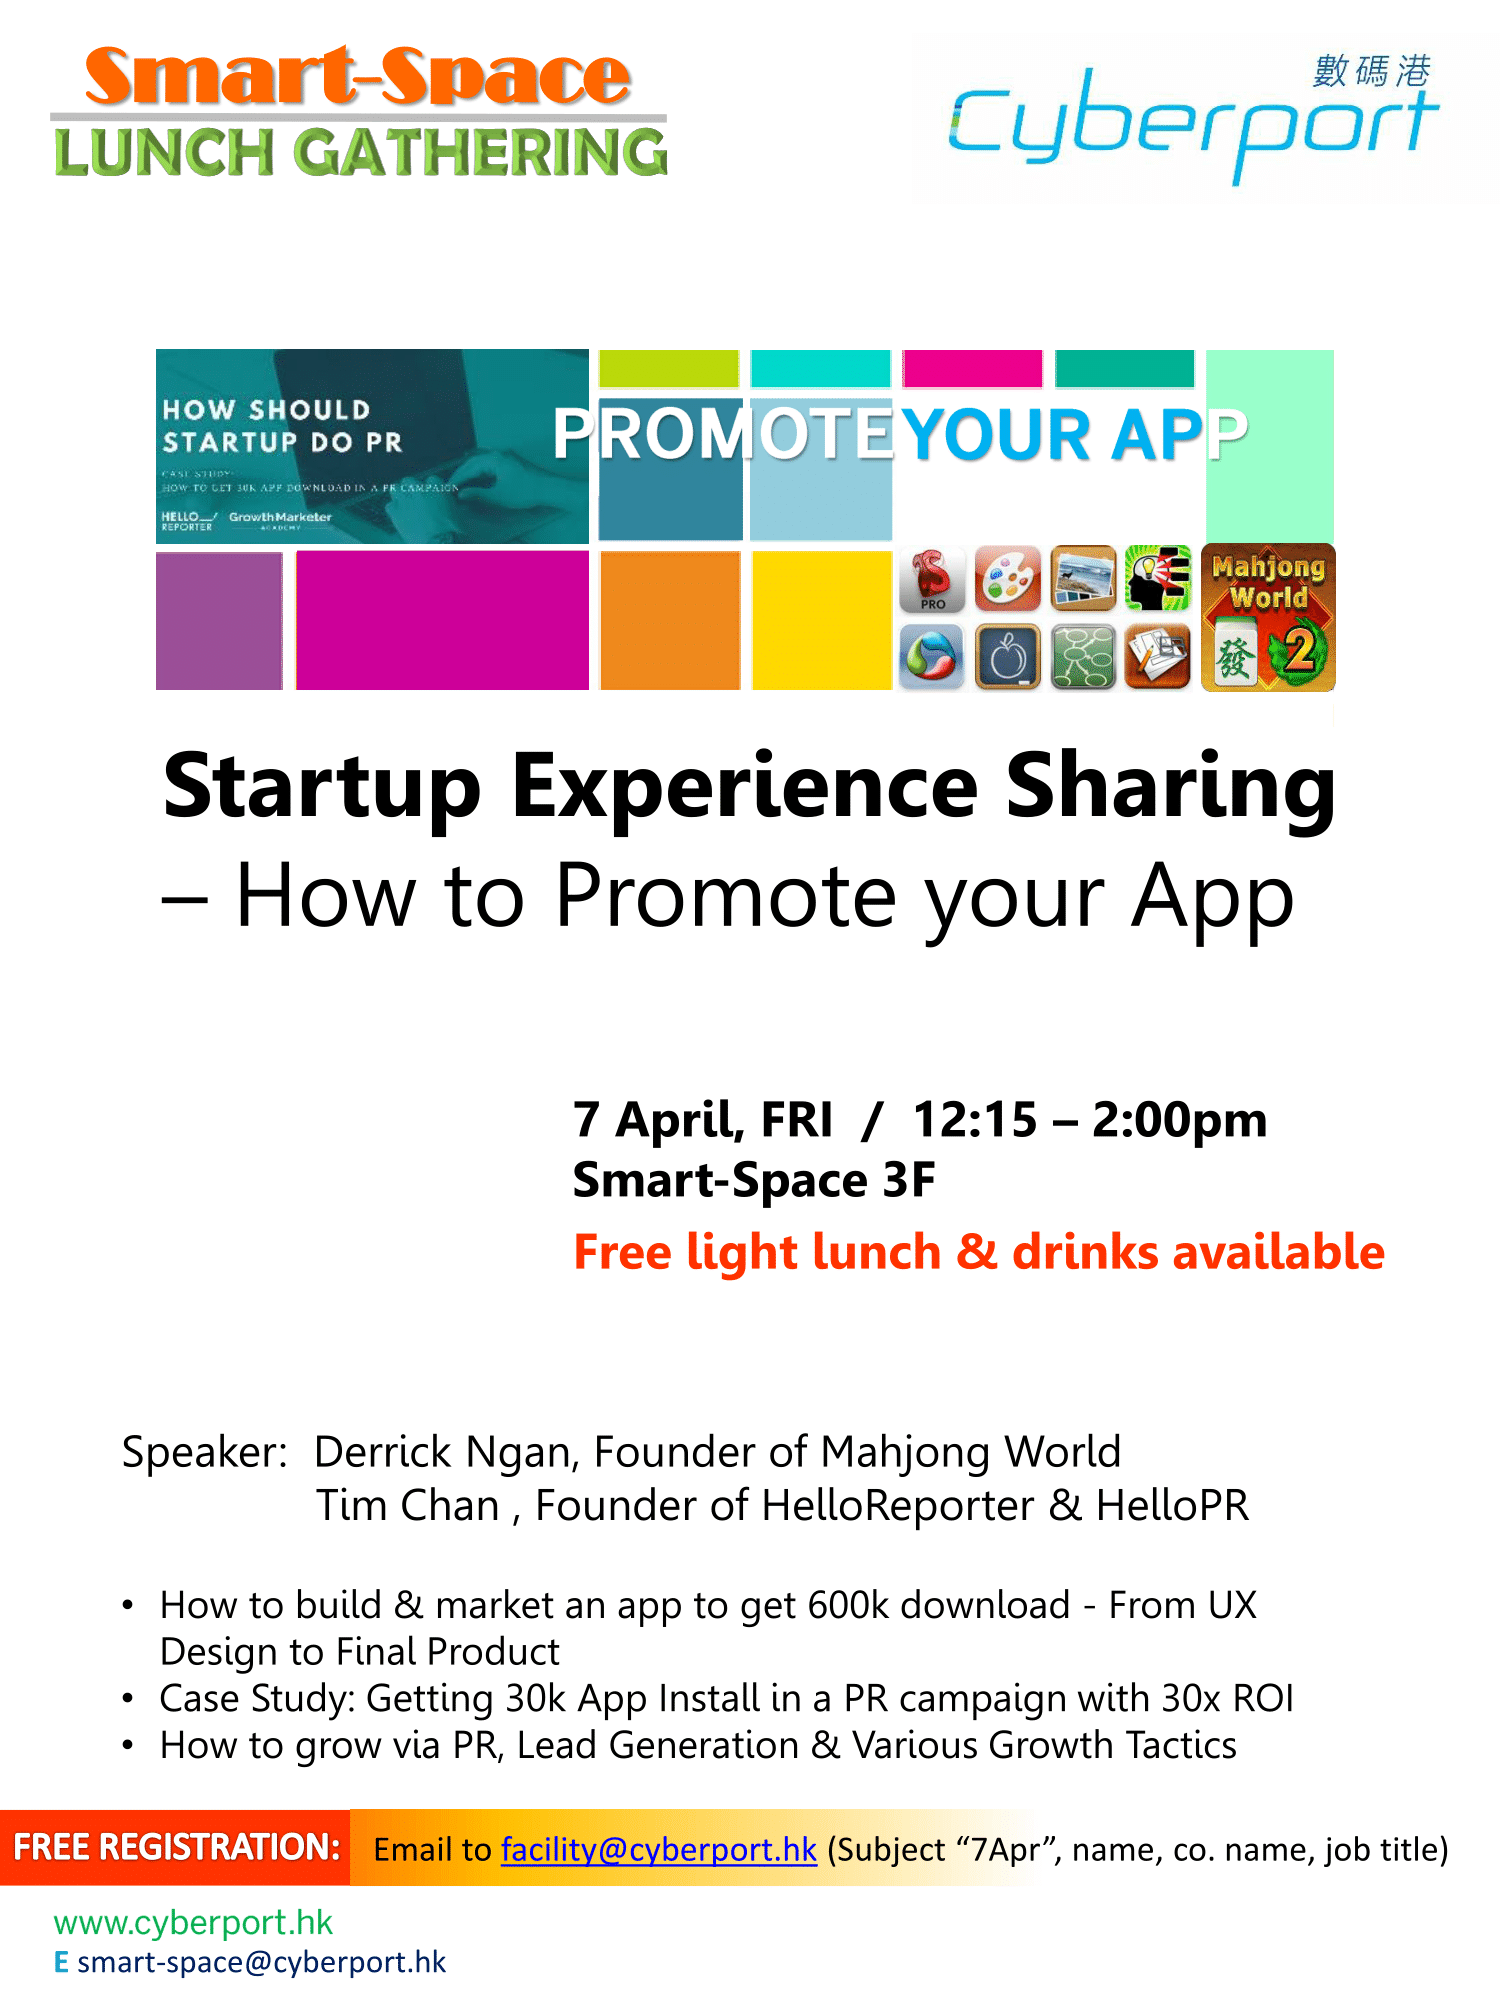 Smart-Space Lunch Gathering: Startup Experience Sharing - How to Promote your Apps